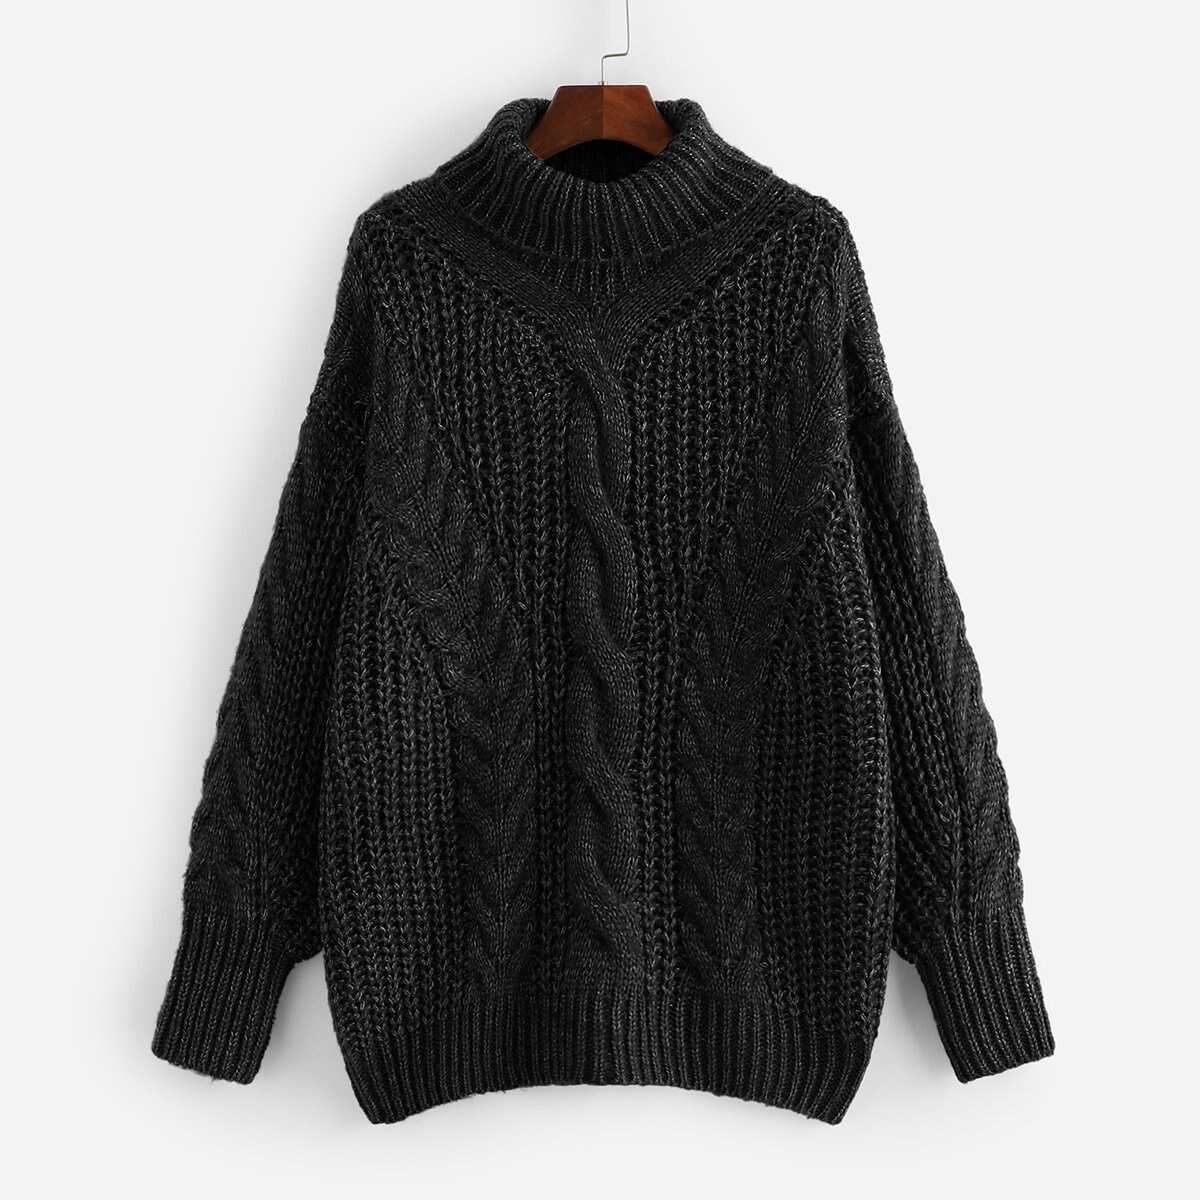 Plus Turtleneck Cable Knit Marled Sweater - Shein - GOOFASH